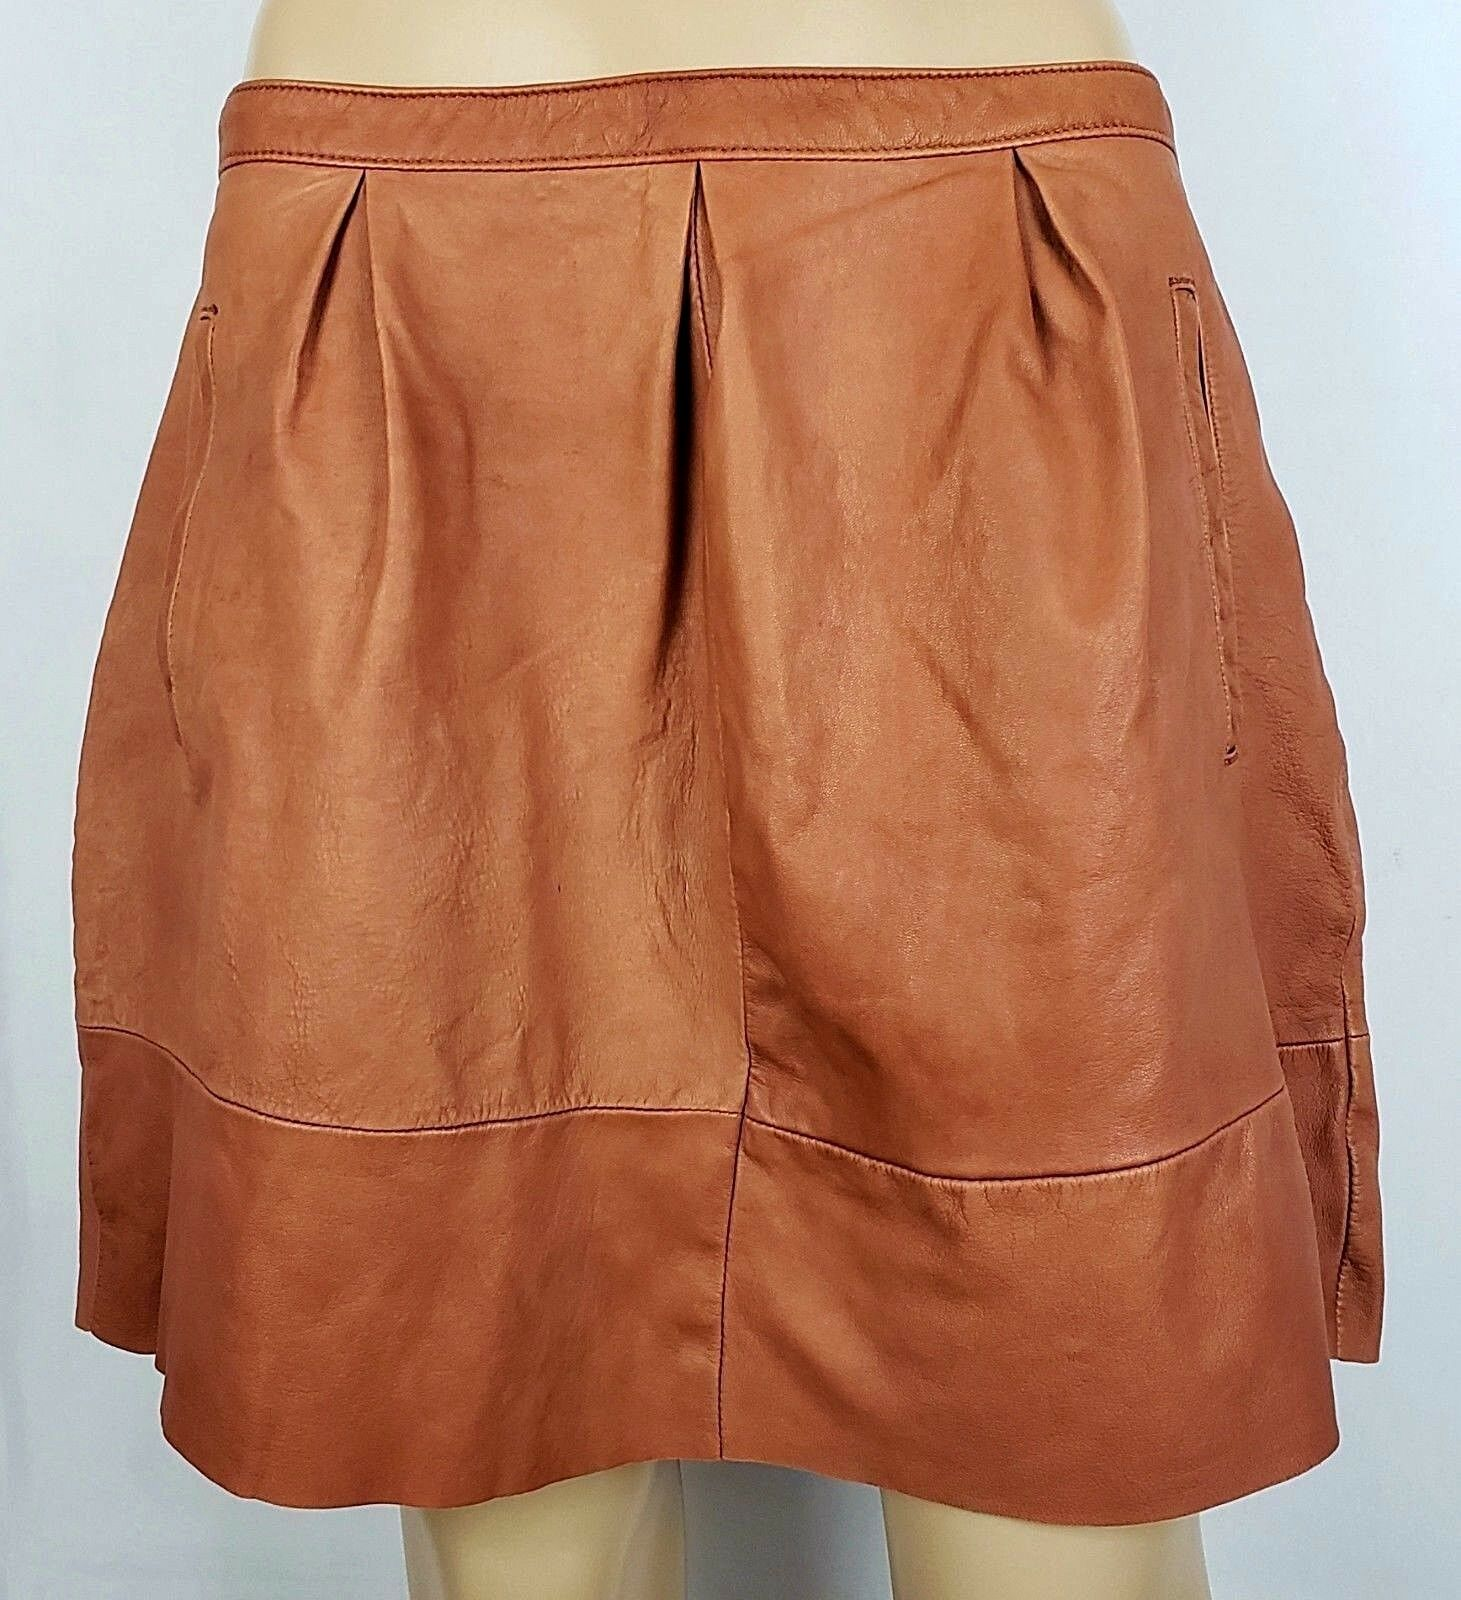 Madewell Broadway & Broome Belltoll size 12 Soft Leather Skirt